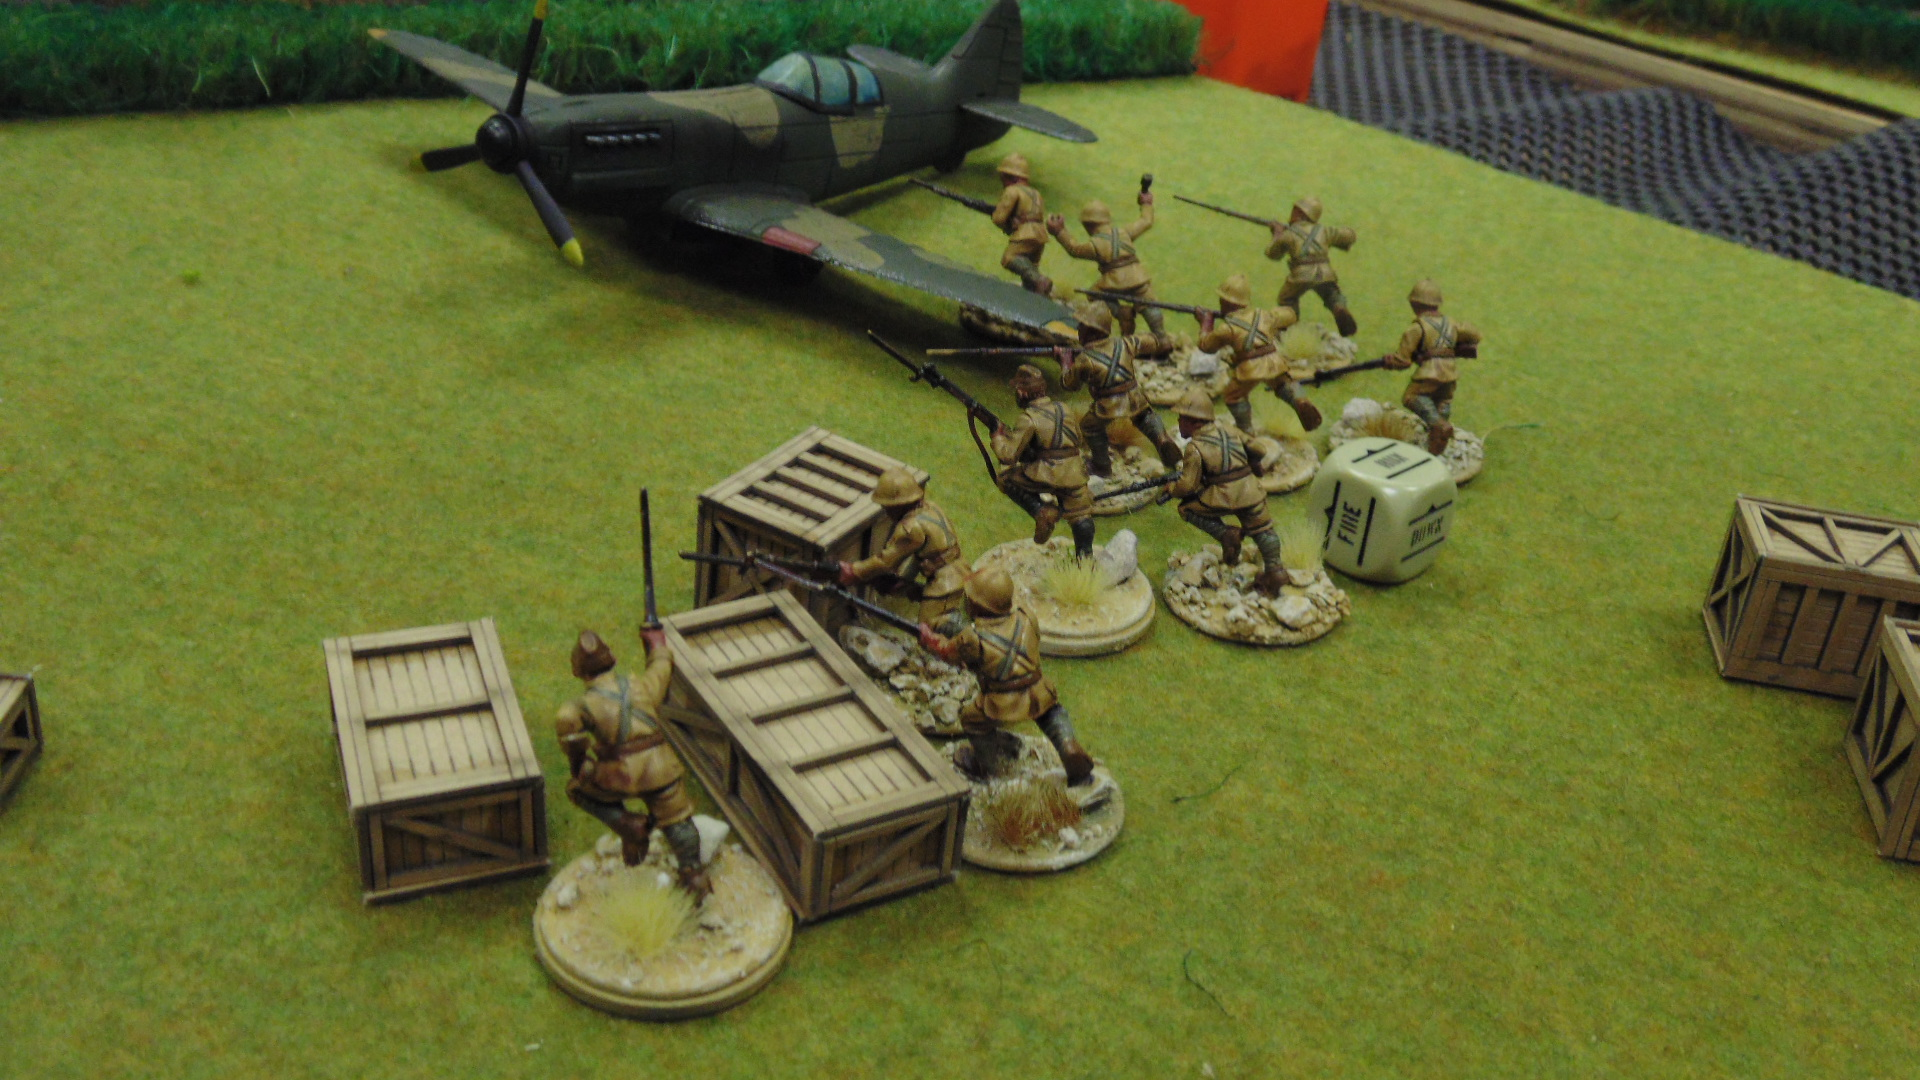 Crossbow Vs Roundup Battle Report: British Vs Japanese Round Two – Ontabletop